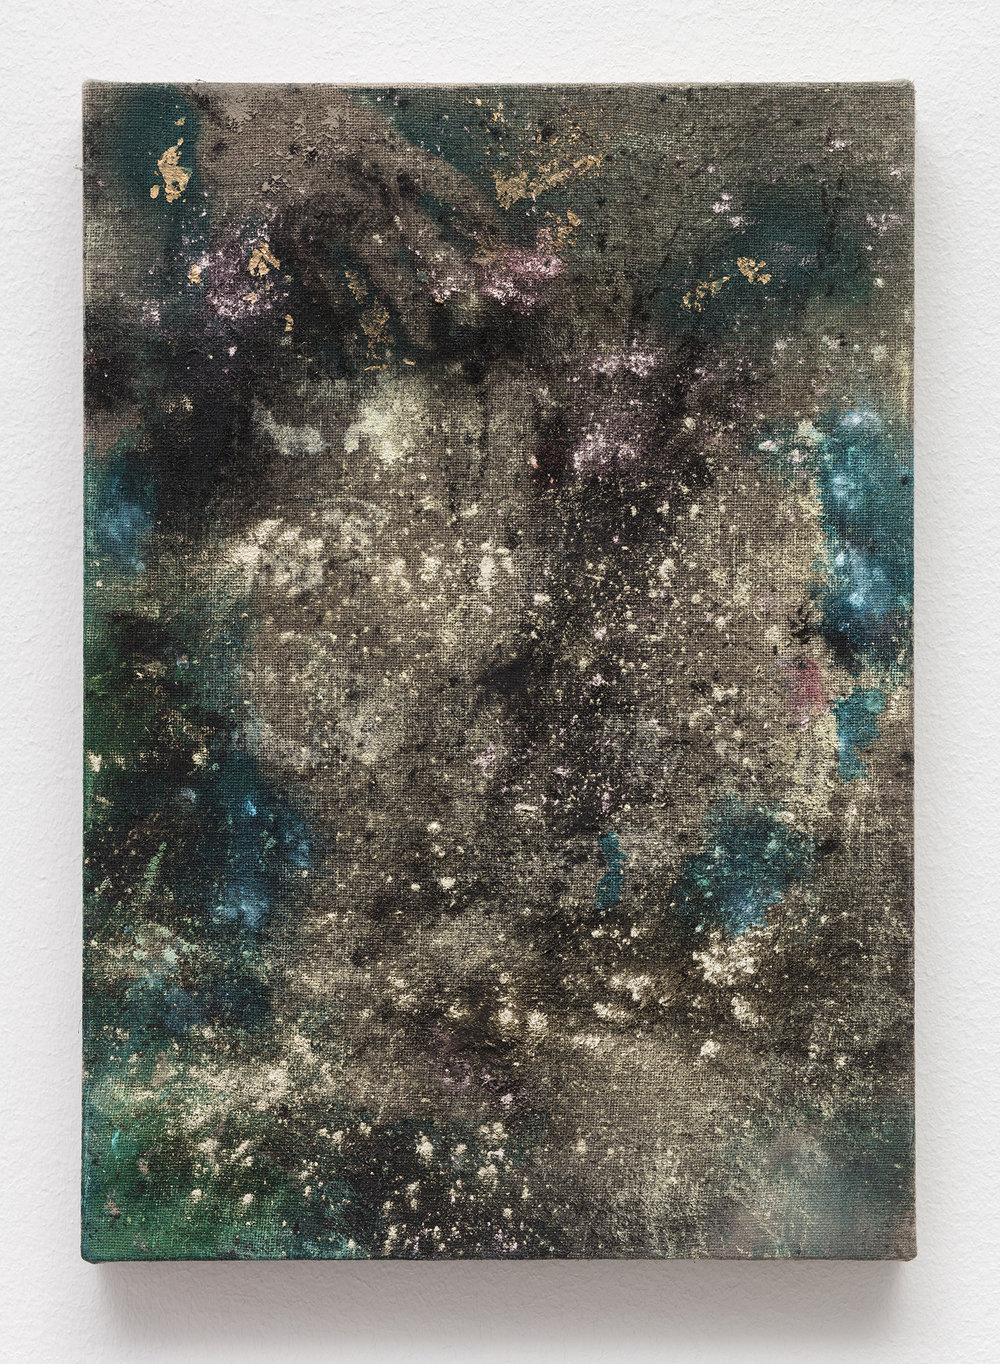 Universal Accidental , Flashe, mica, acrylic, gold leaf and charcoal on linen, 13 x 8 inches, 2016